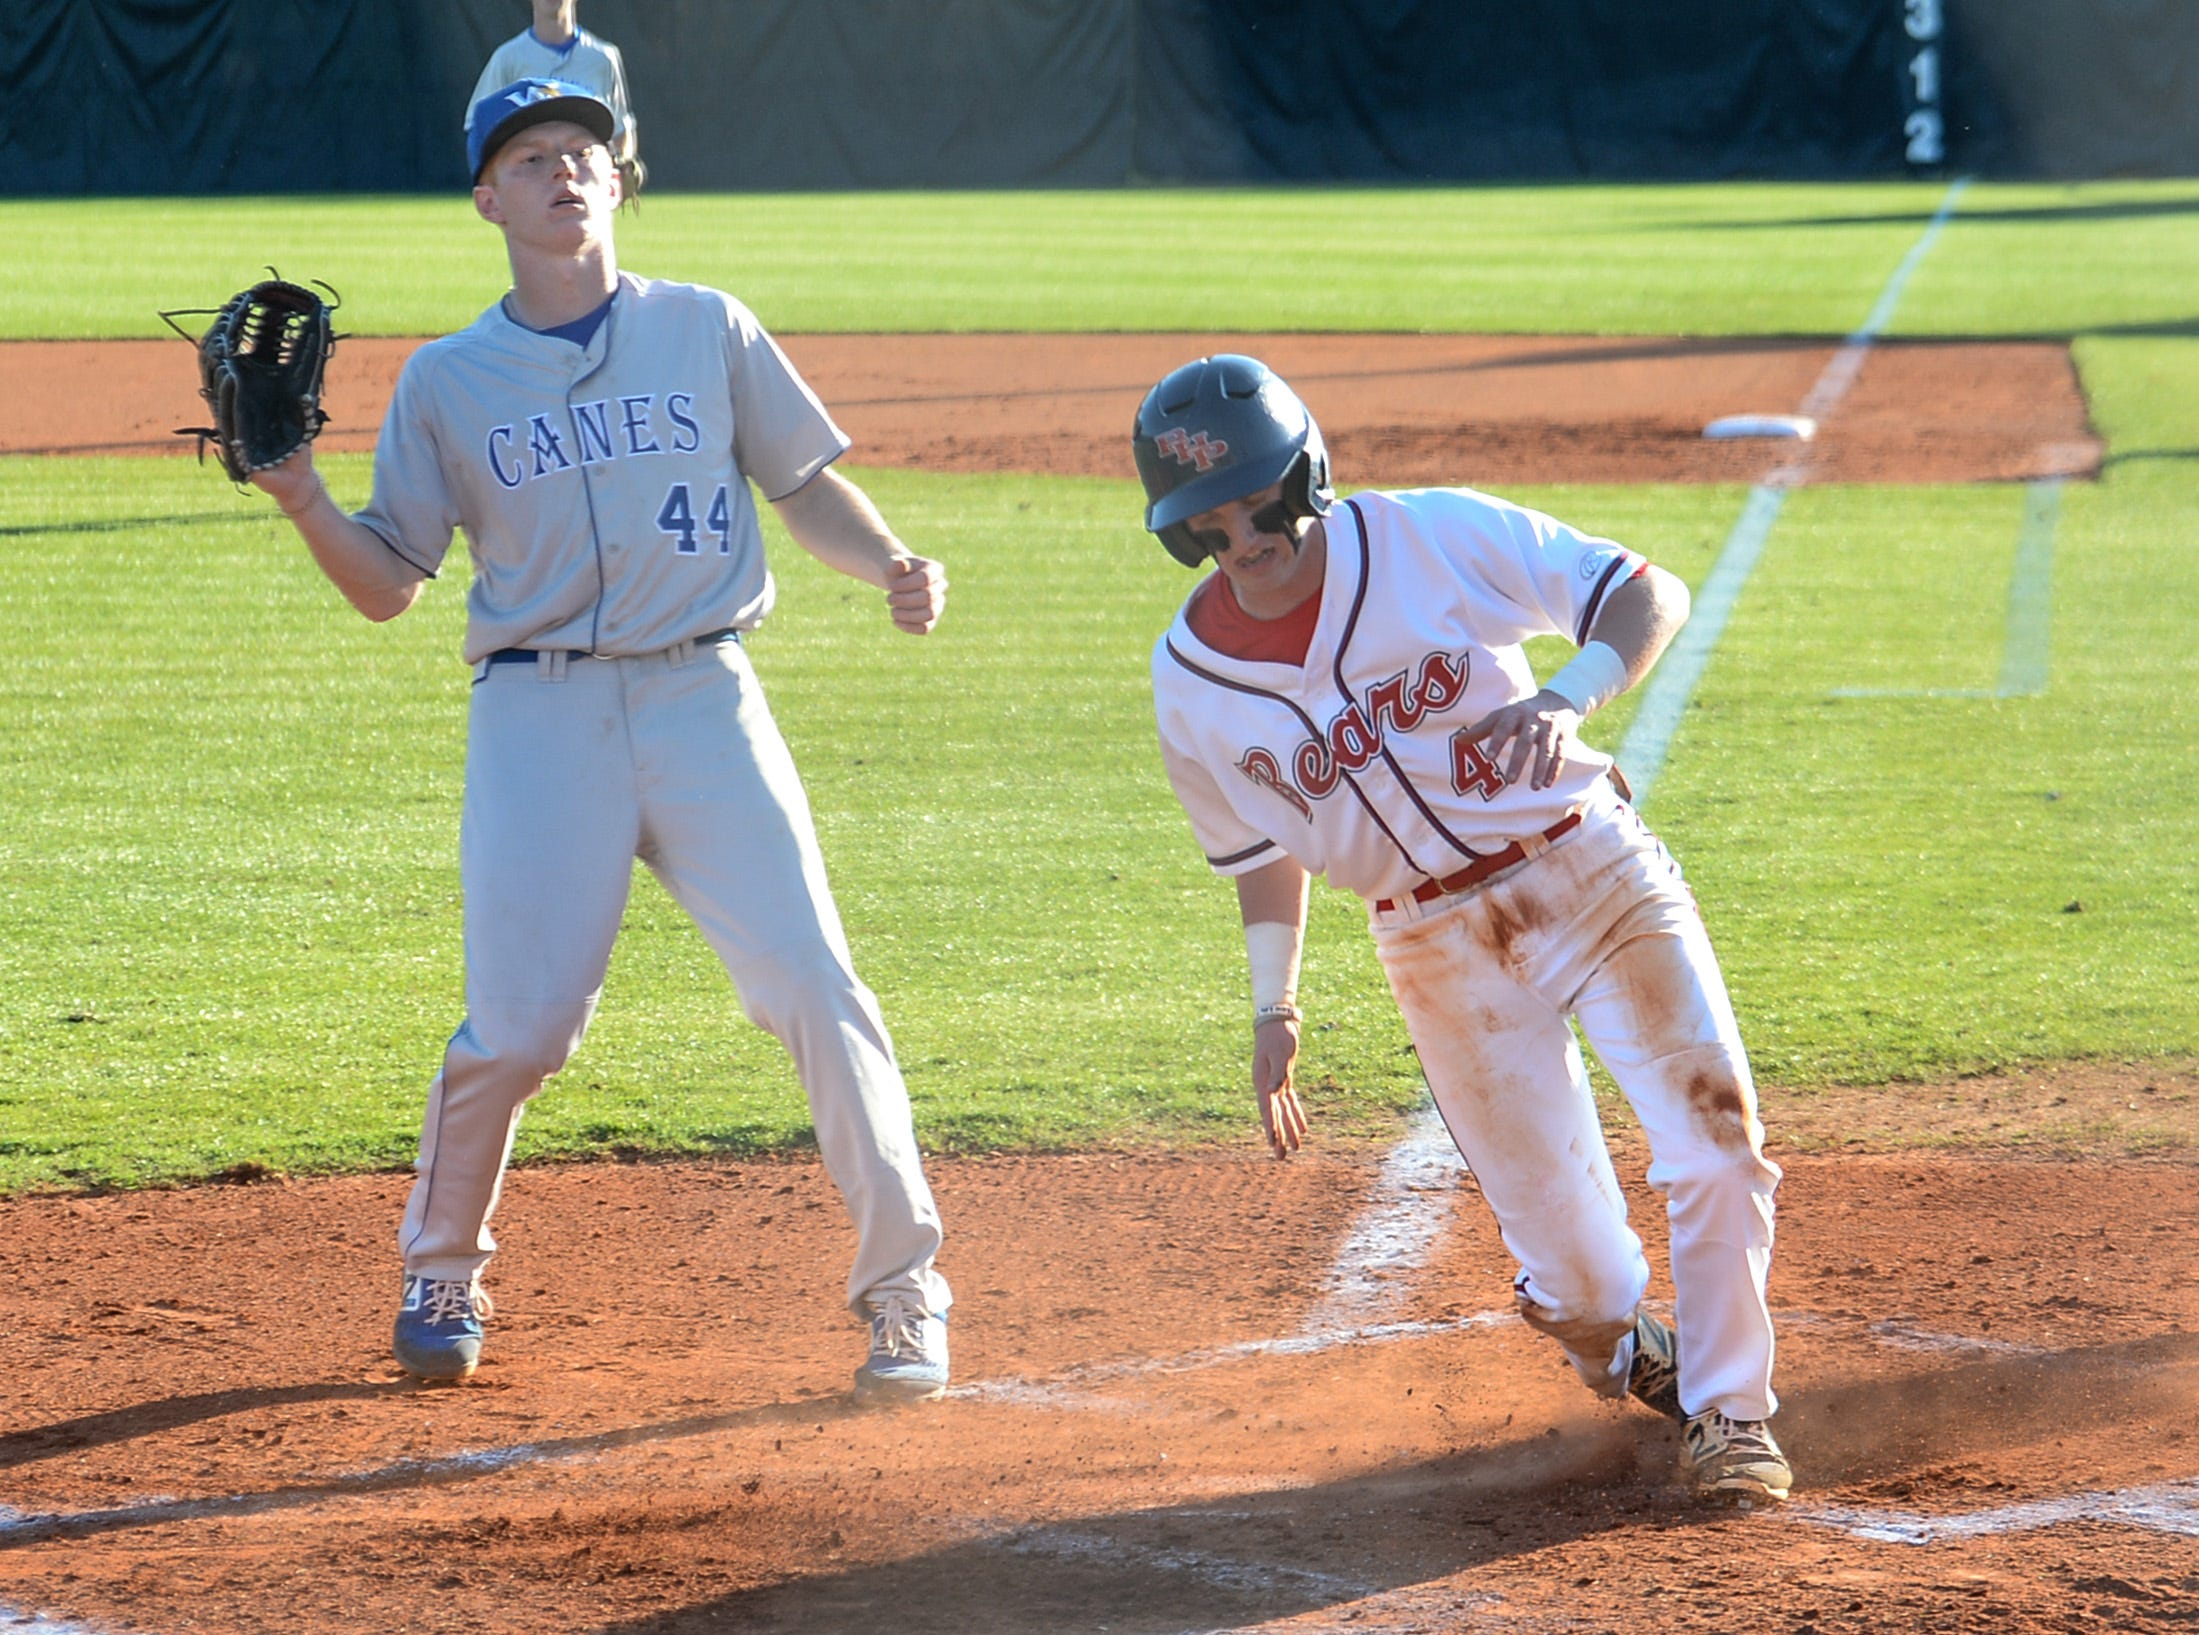 Belton-Honea Path sophomore Talmadge Lecroy (4) scores by Wren pitcher Carter Willis (44) during the bottom of the first inning at Belton-Honea Path High School in Honea Path Wednesday, April 10, 2019.